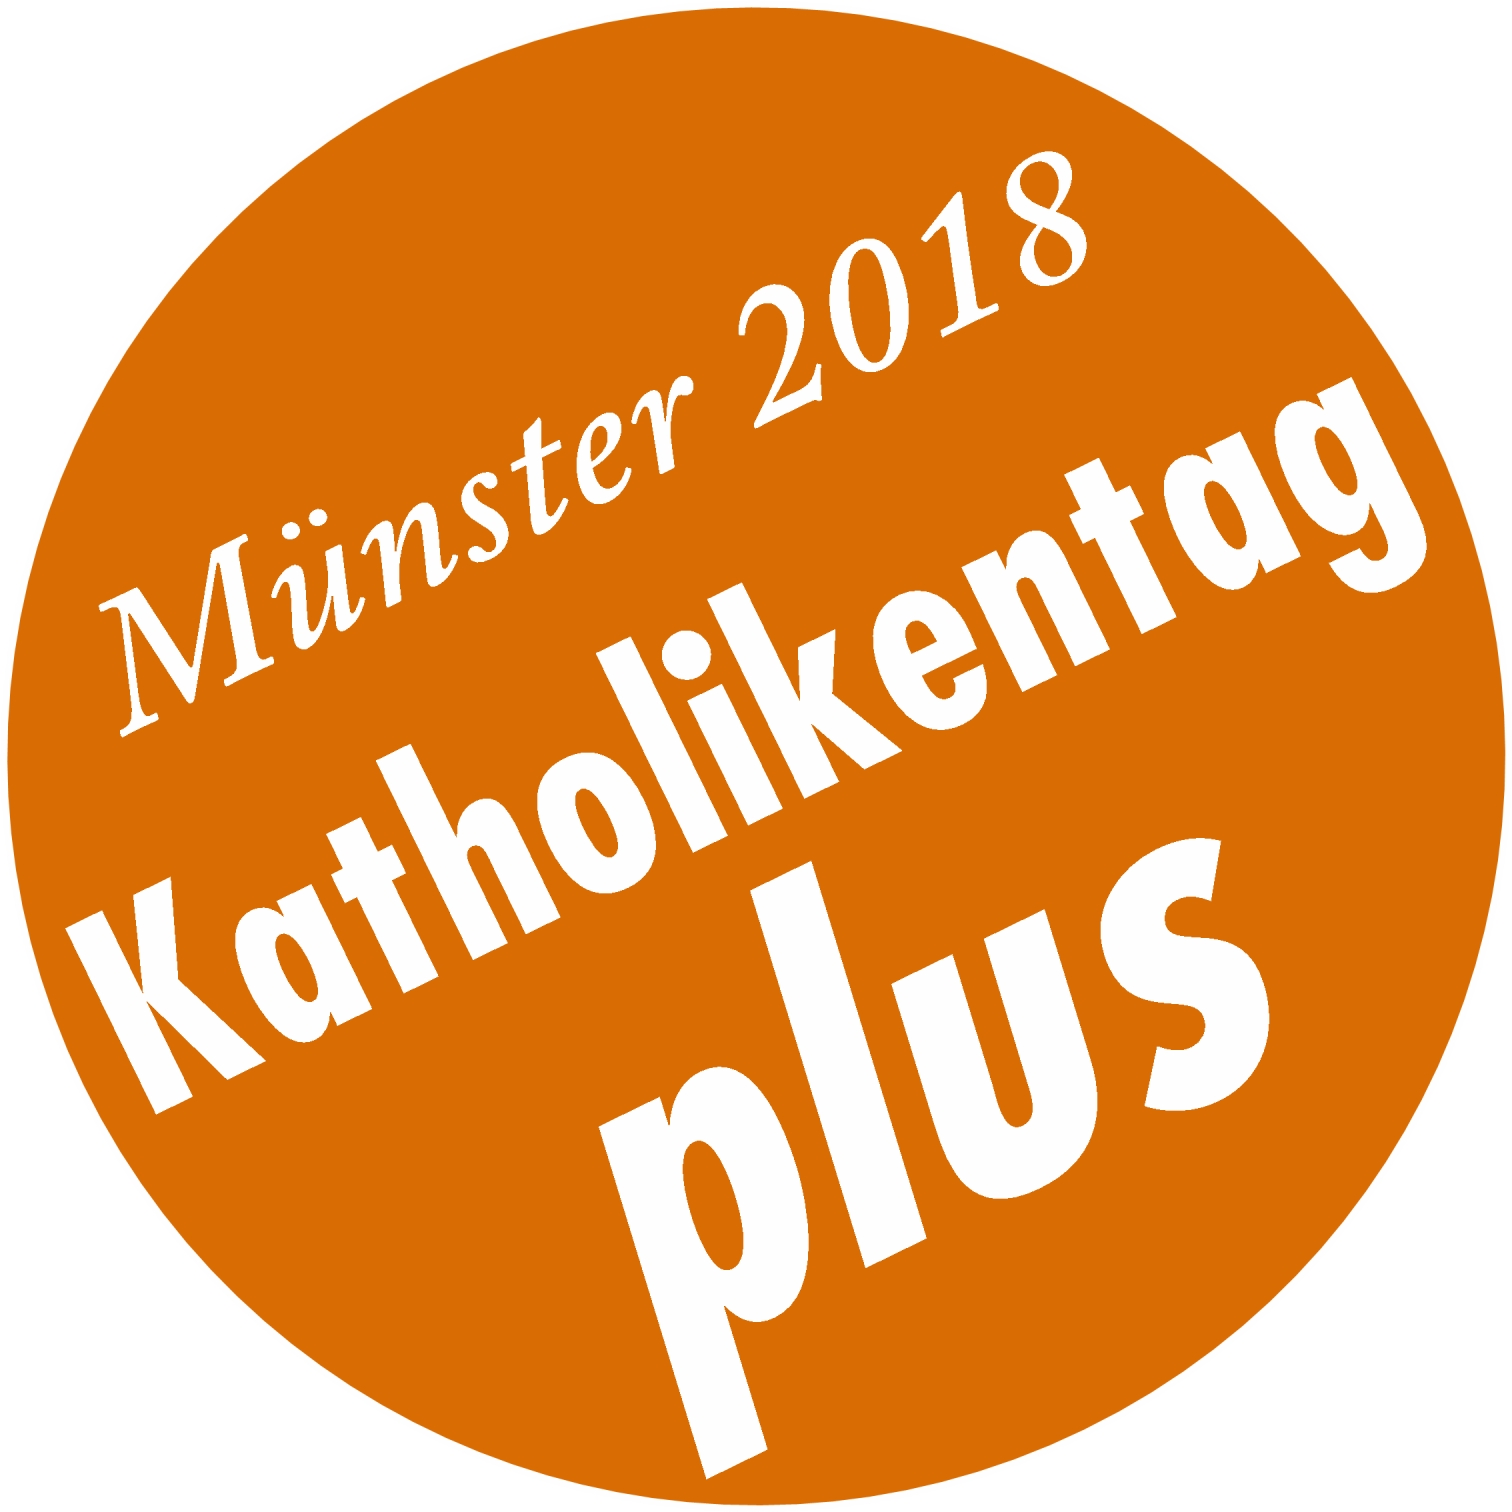 https://www.wir-sind-kirche.de/files/wsk/2018/Button_Kath_plus.jpg